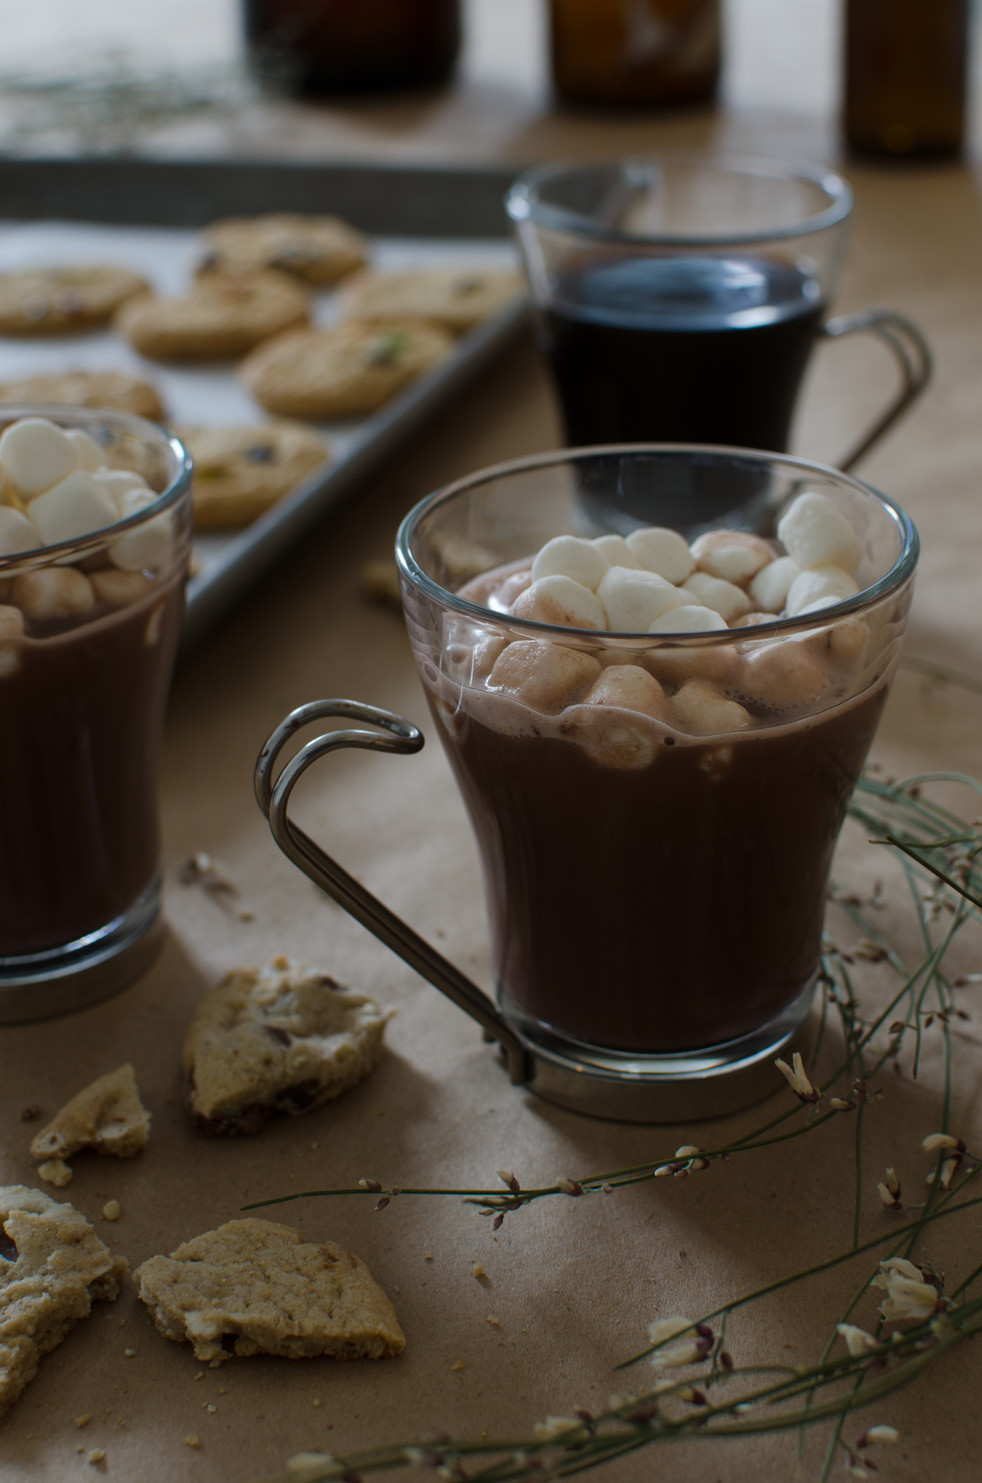 Good vibes and hot chocolate